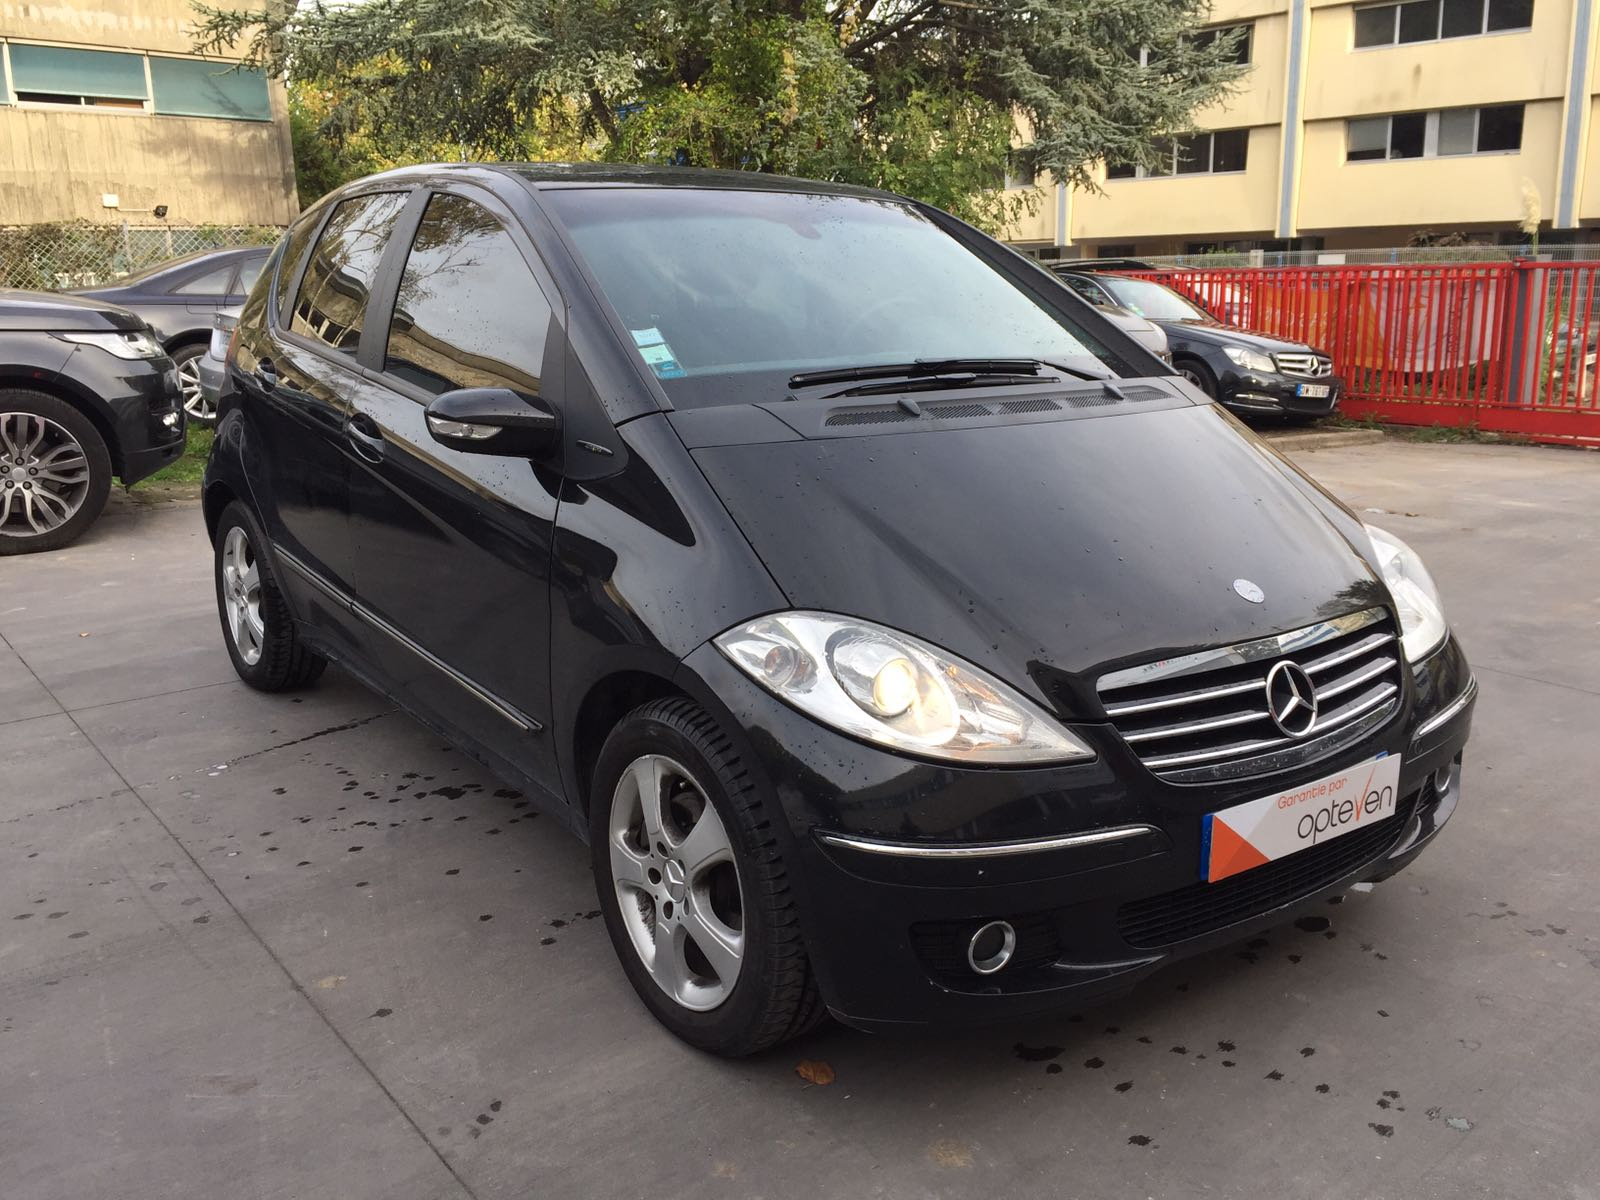 voiture mercedes classe a 200 cdi avantgarde autotronic cvt occasion diesel 2006 72900 km. Black Bedroom Furniture Sets. Home Design Ideas